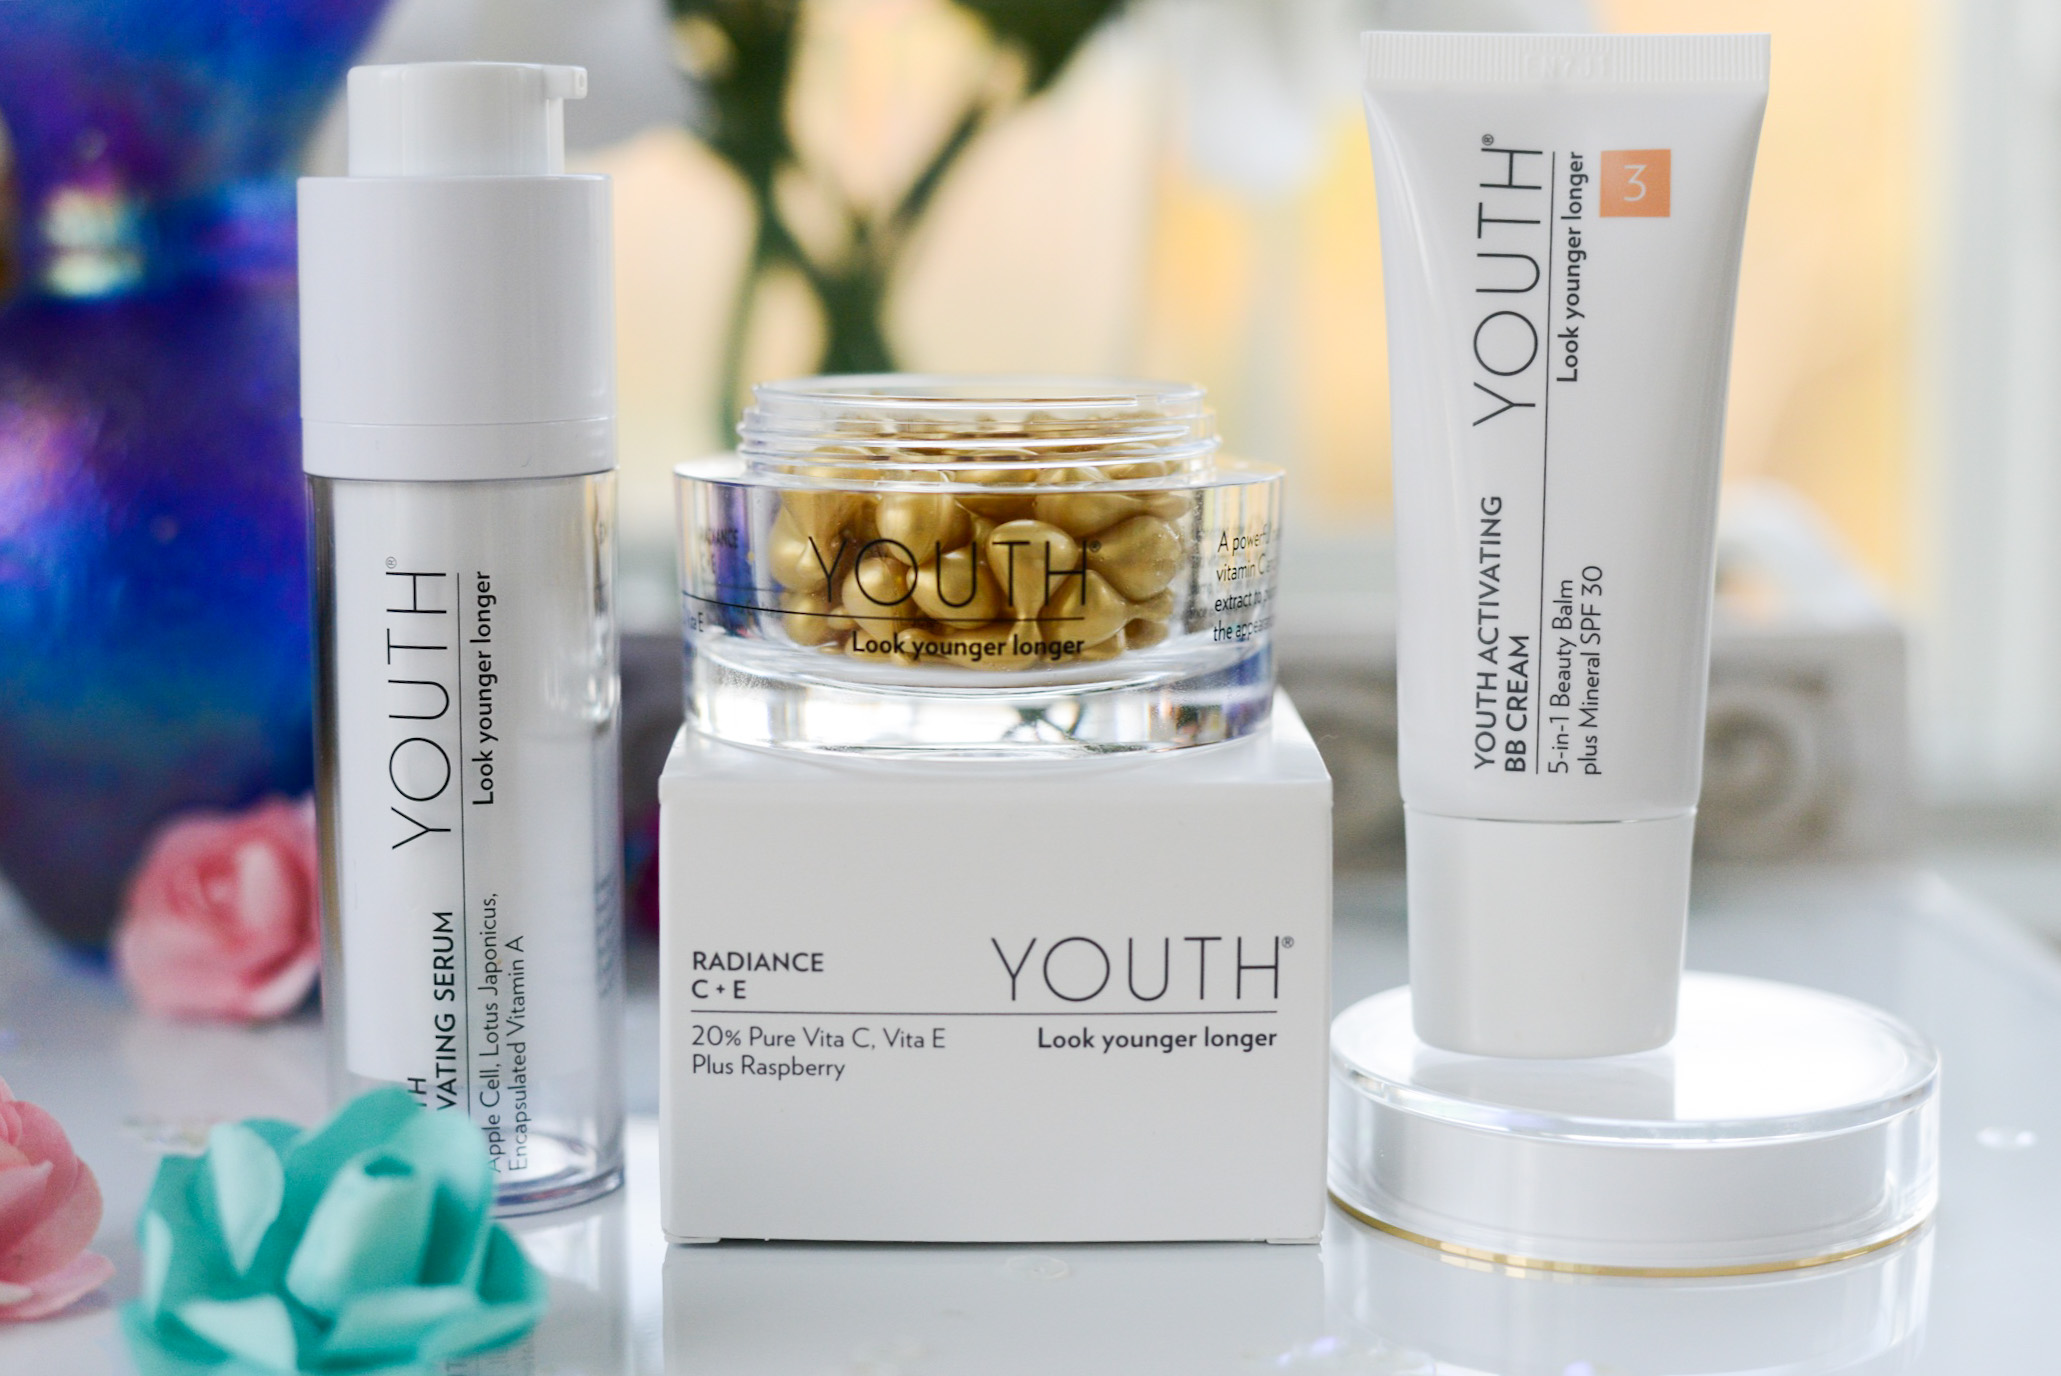 current nightstand essentials- Shaklee YOUTH